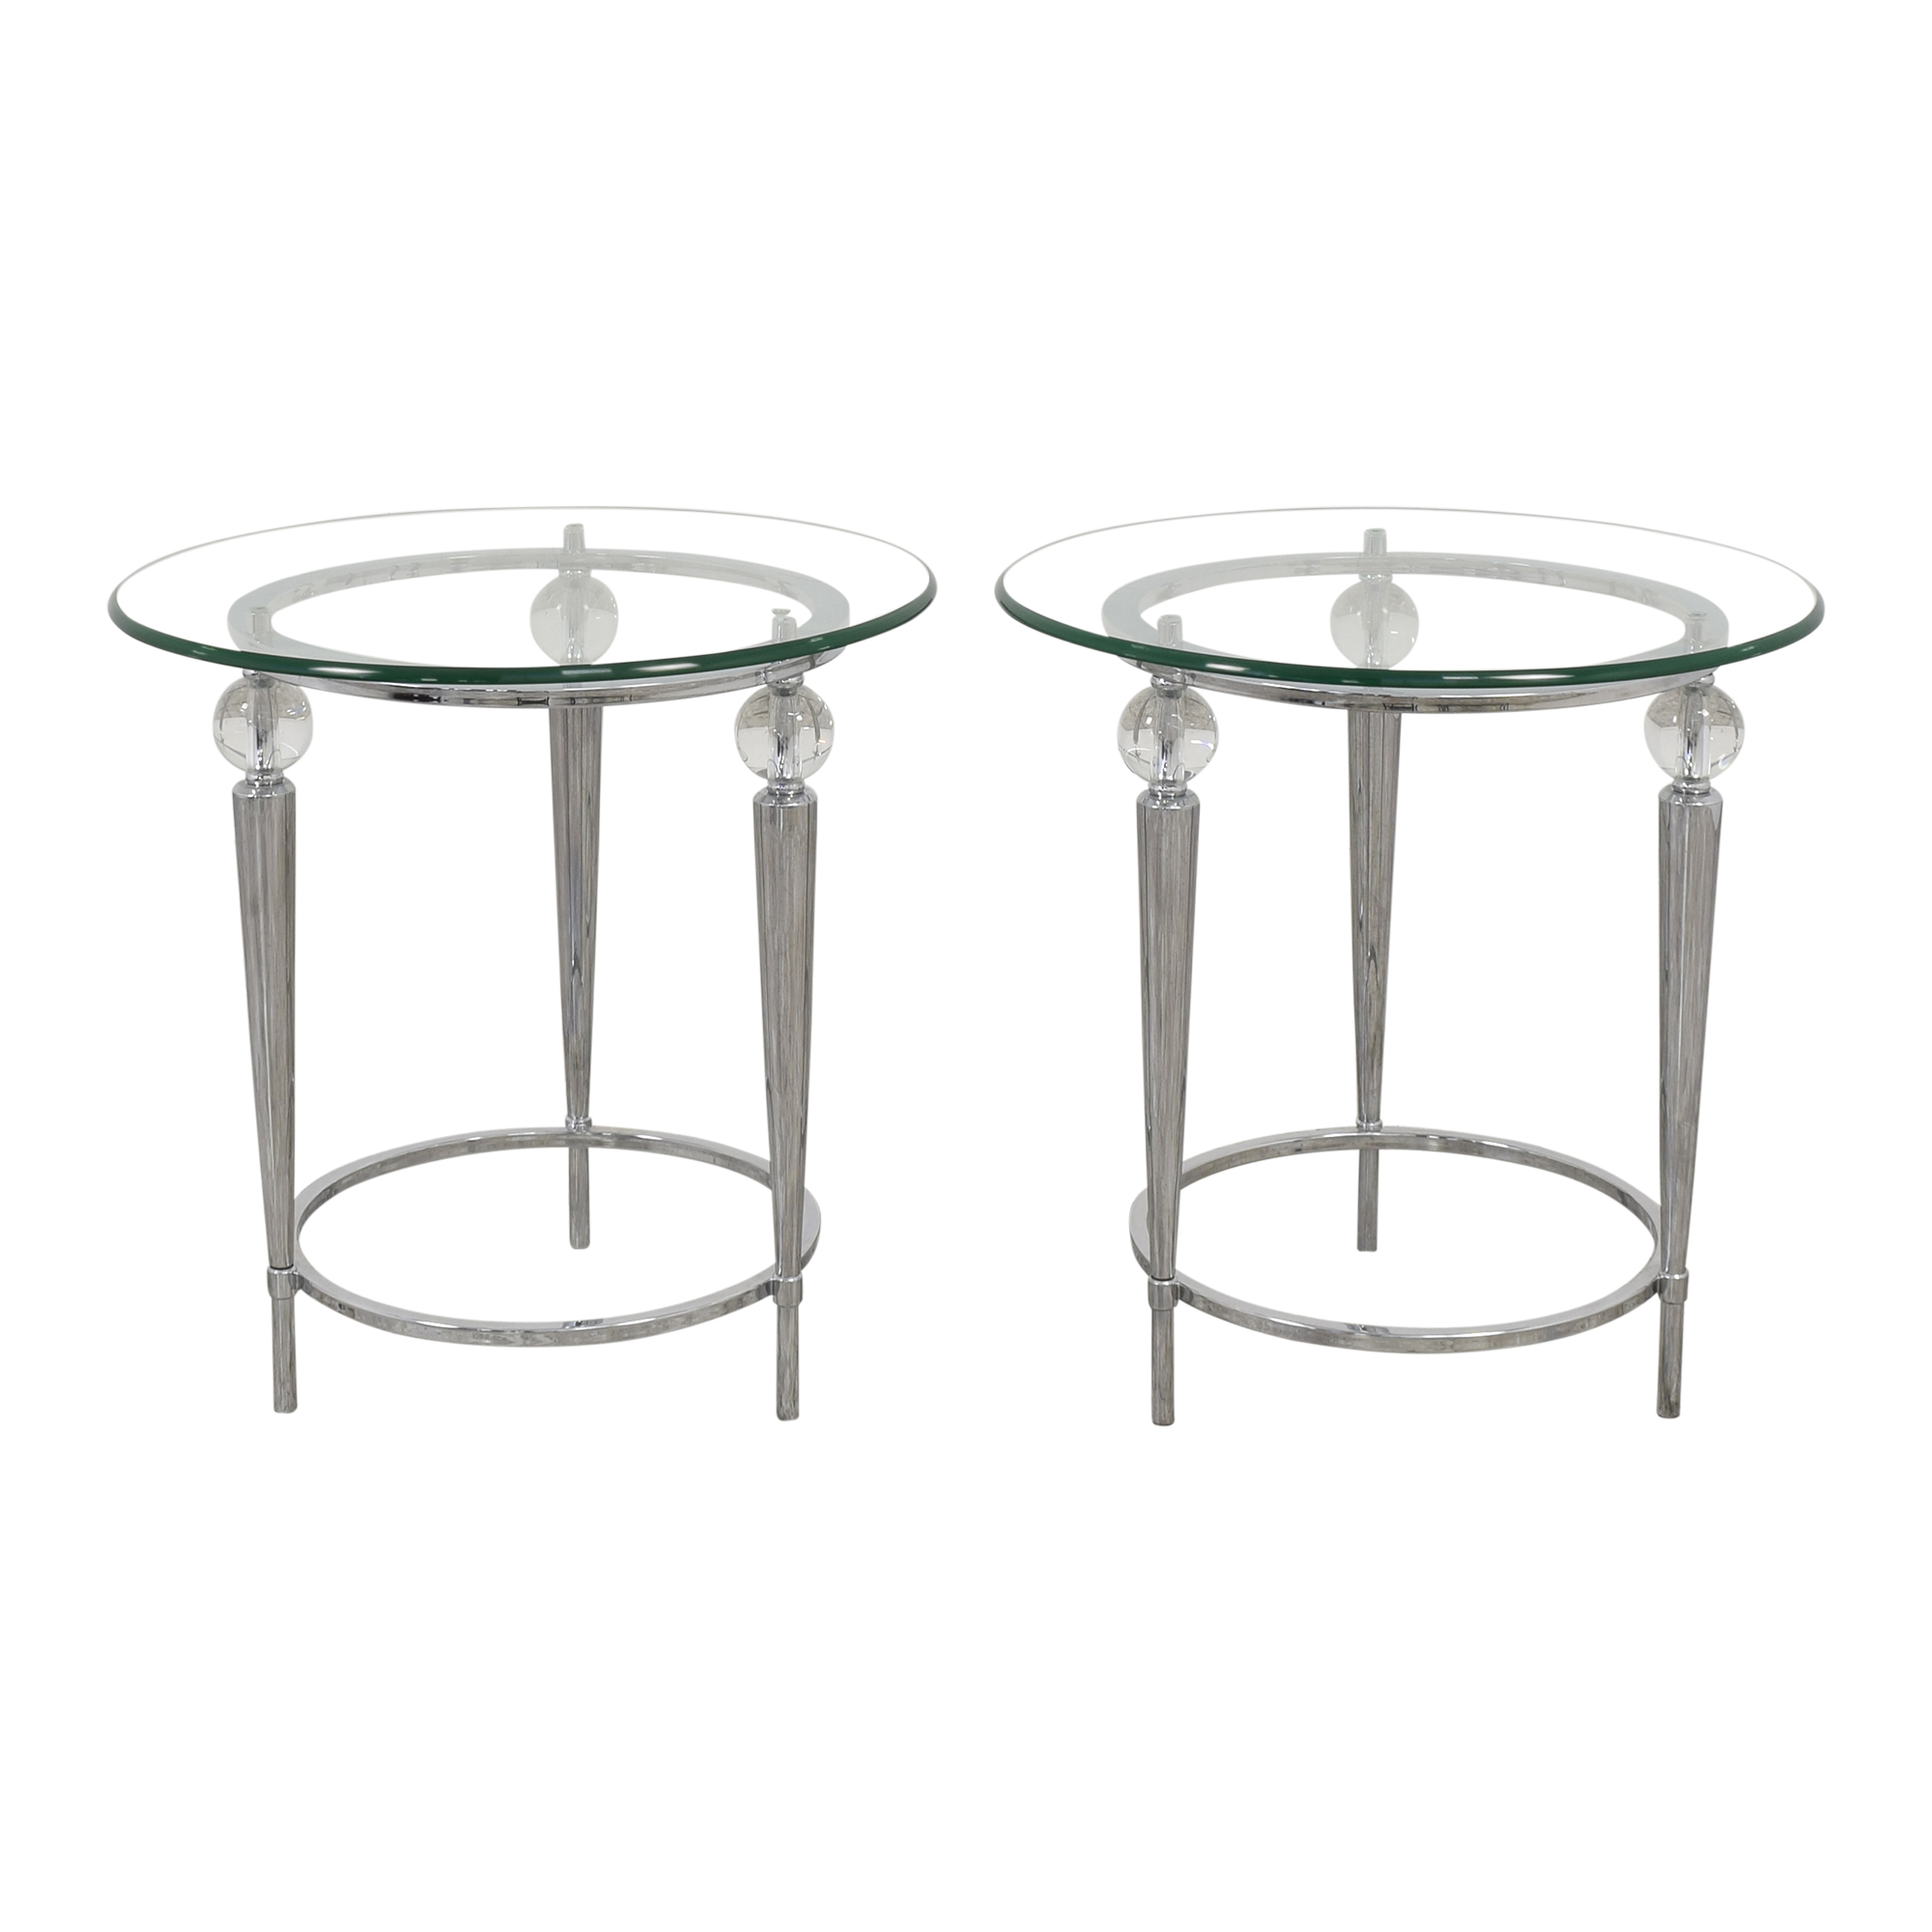 AllModern Round Glass Top Side Tables / End Tables